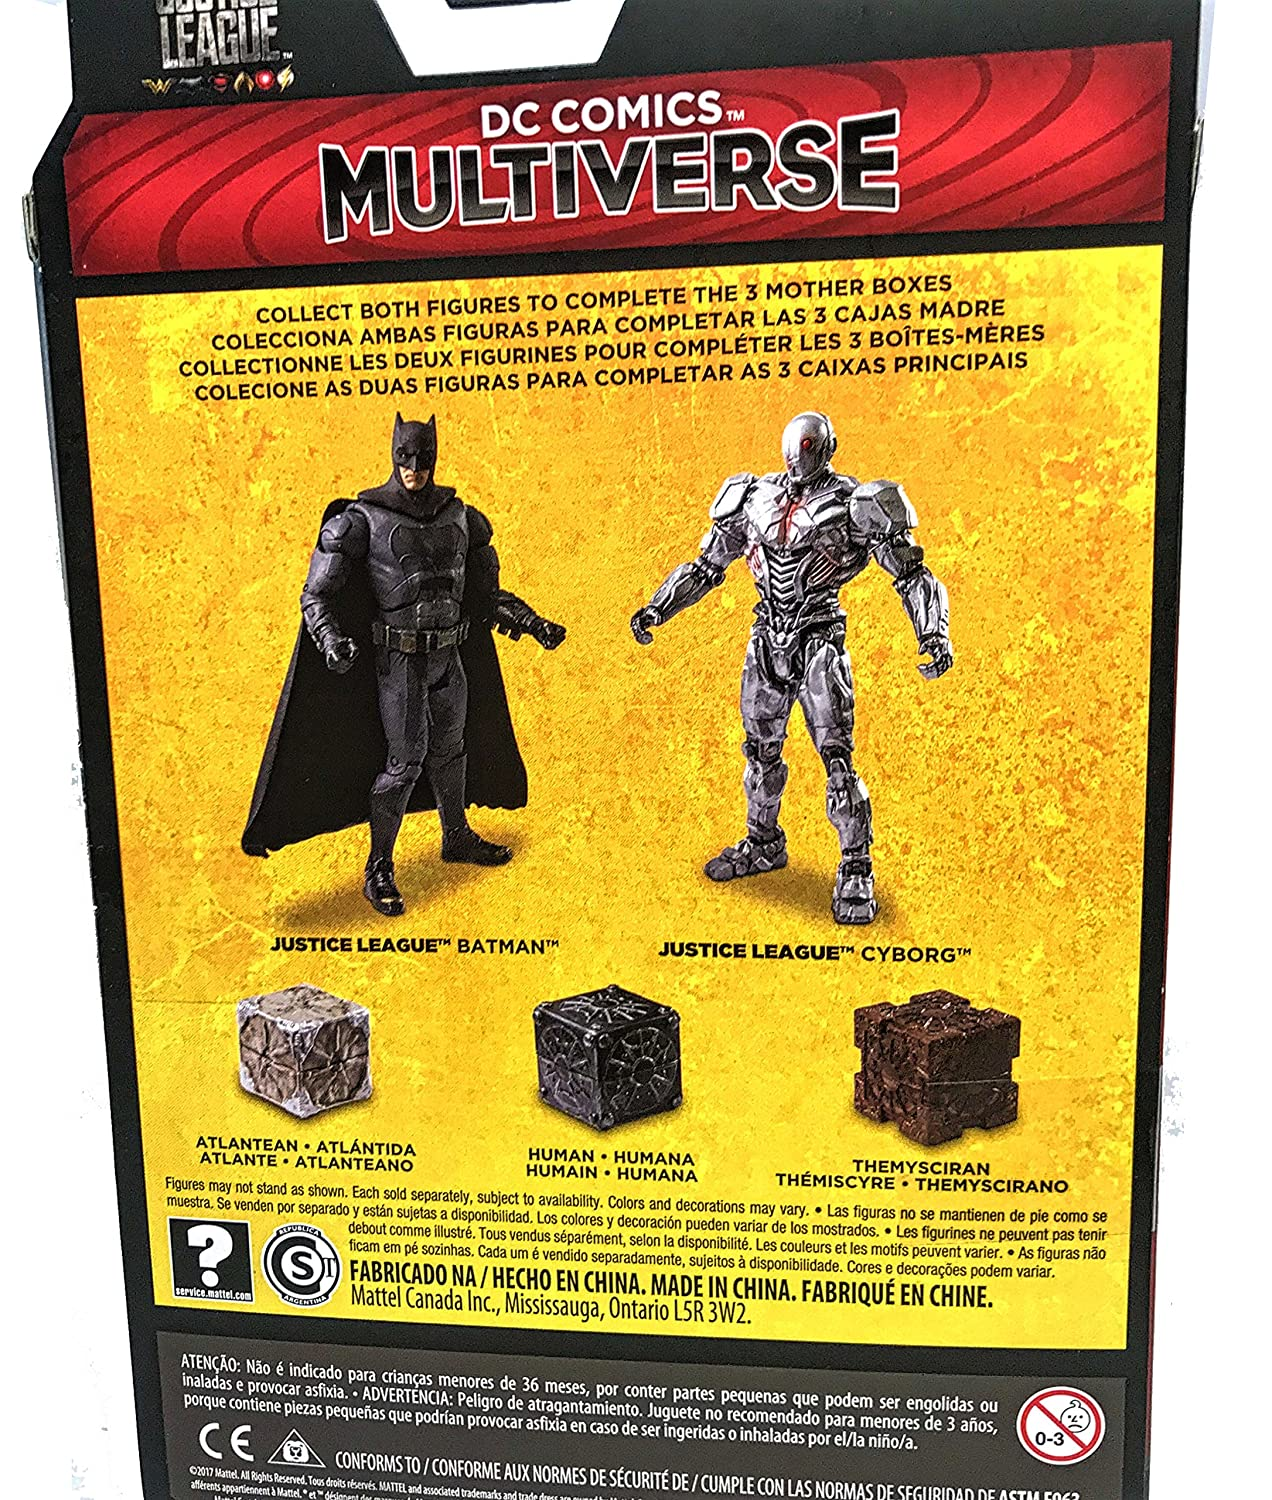 Amazon.com: DC Comics Multiverse Justice League Batman, Cyborg 2 Pack Action Figures: Toys & Games